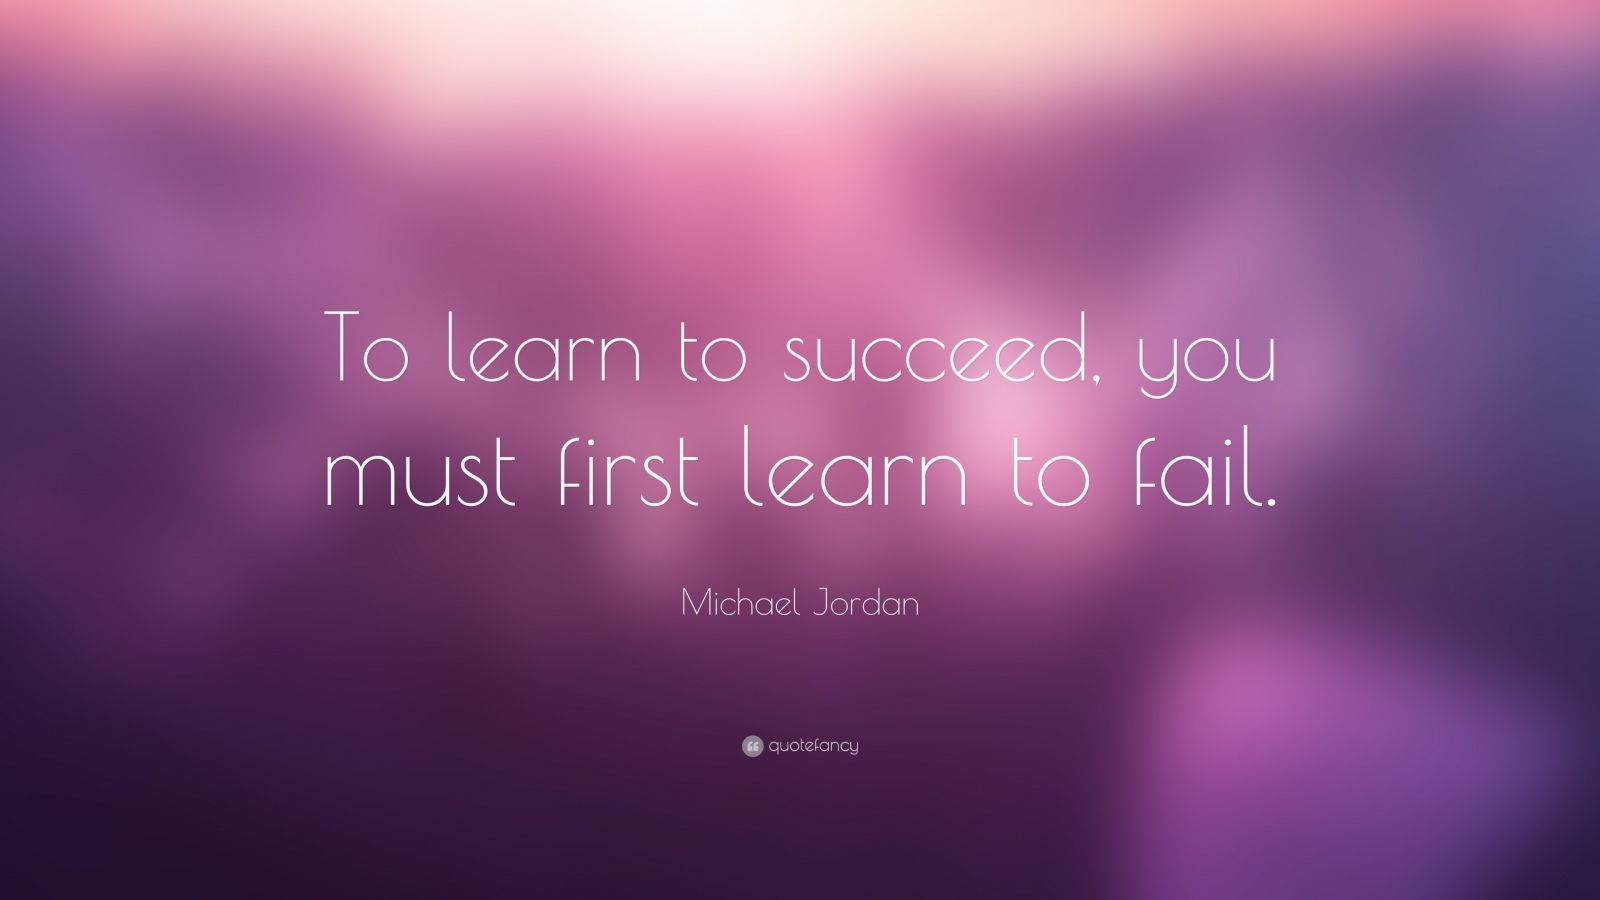 IT Must Learn to Fail Fast to Succeed   Abraic, Inc.